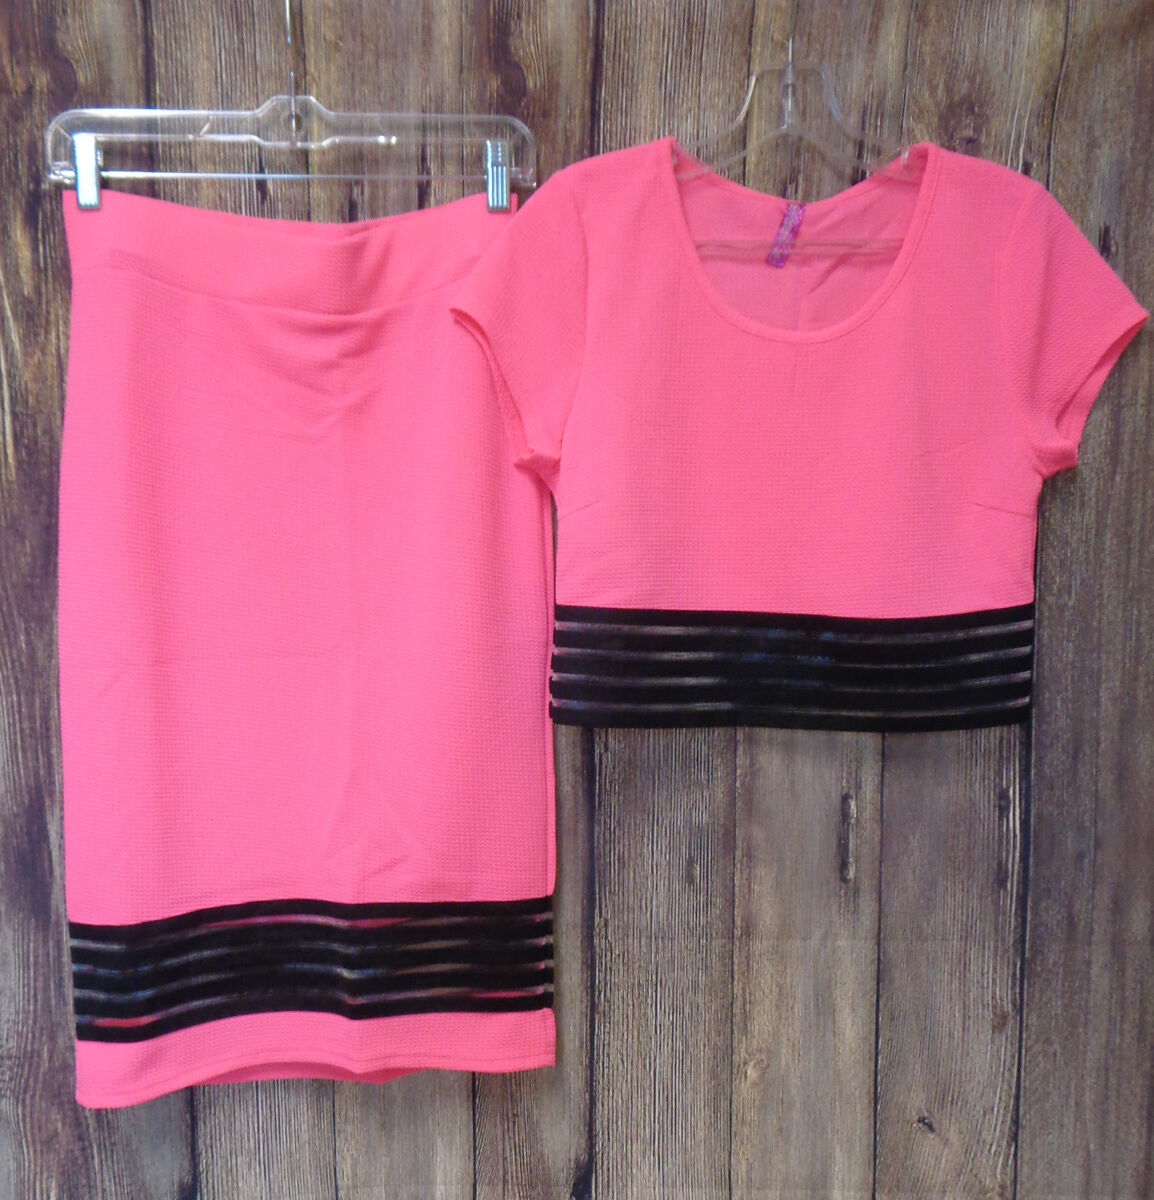 2pc Bodycon Skirt and Top Junior Size Large or XL Color